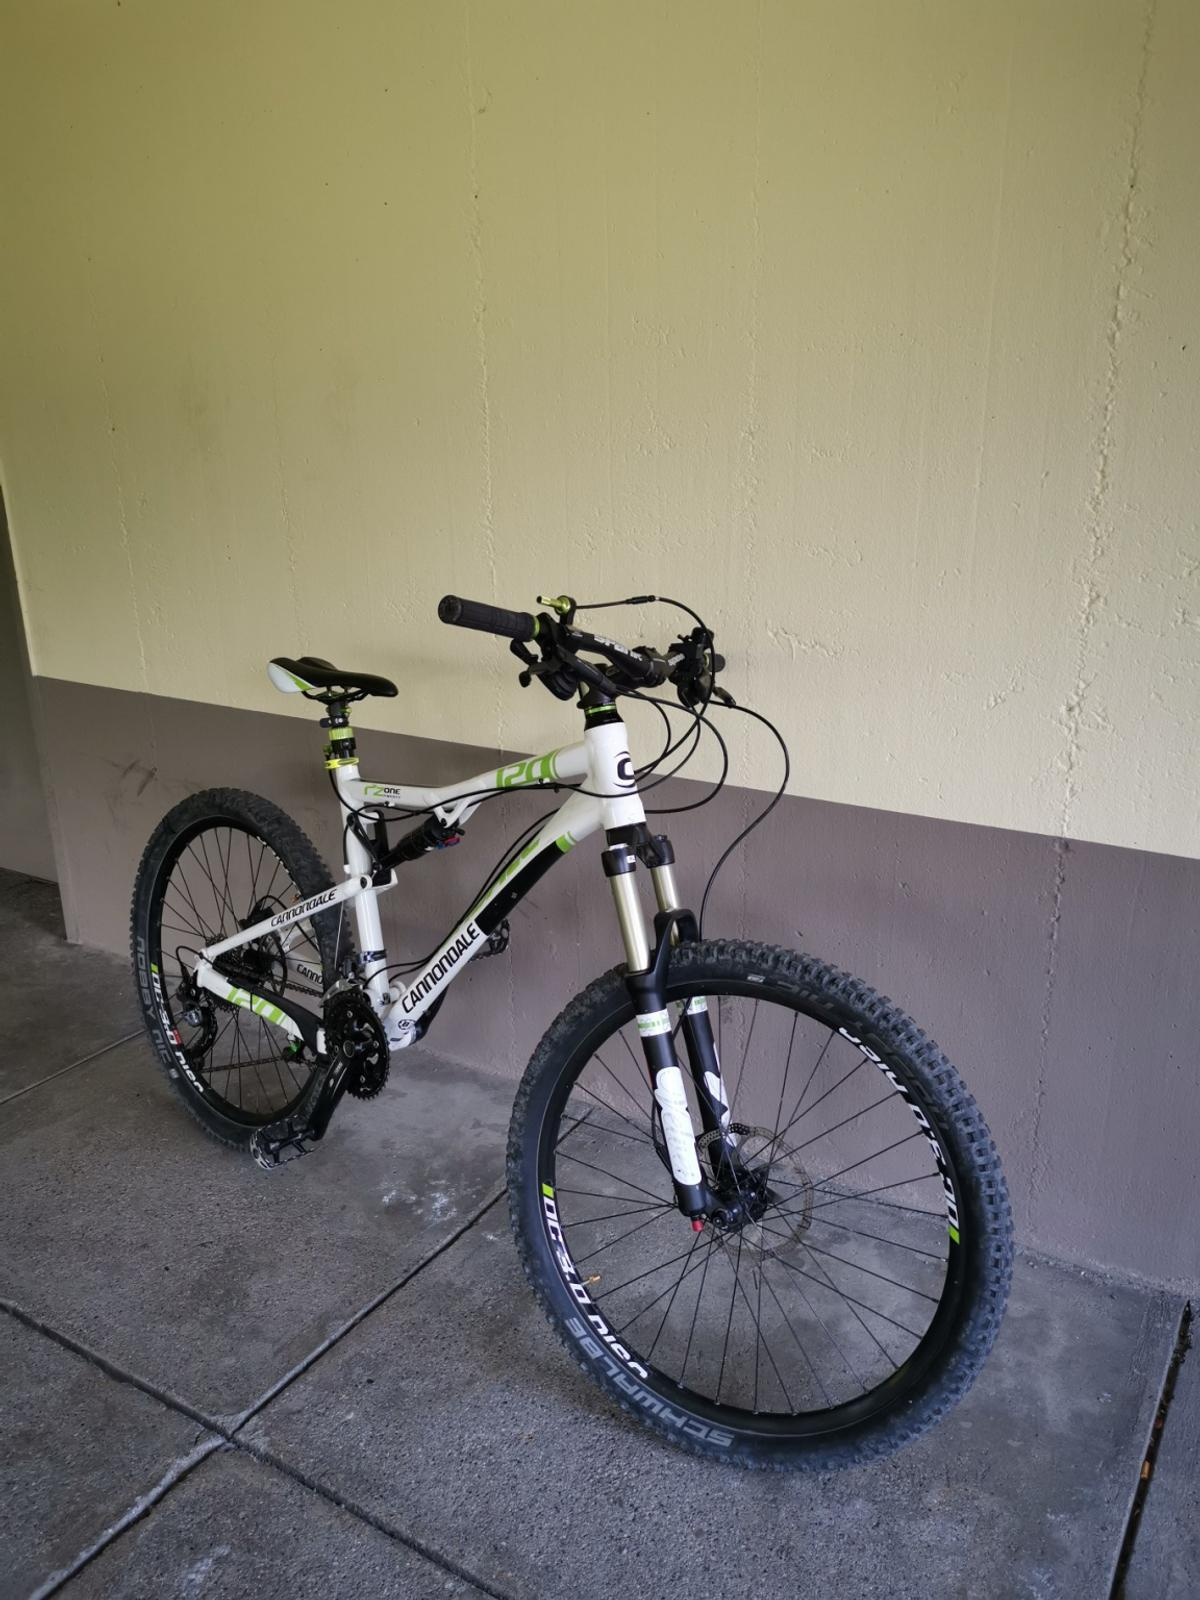 Mtb Cannondale Rz One Twenty 2 26 Zoll Fully in 82256